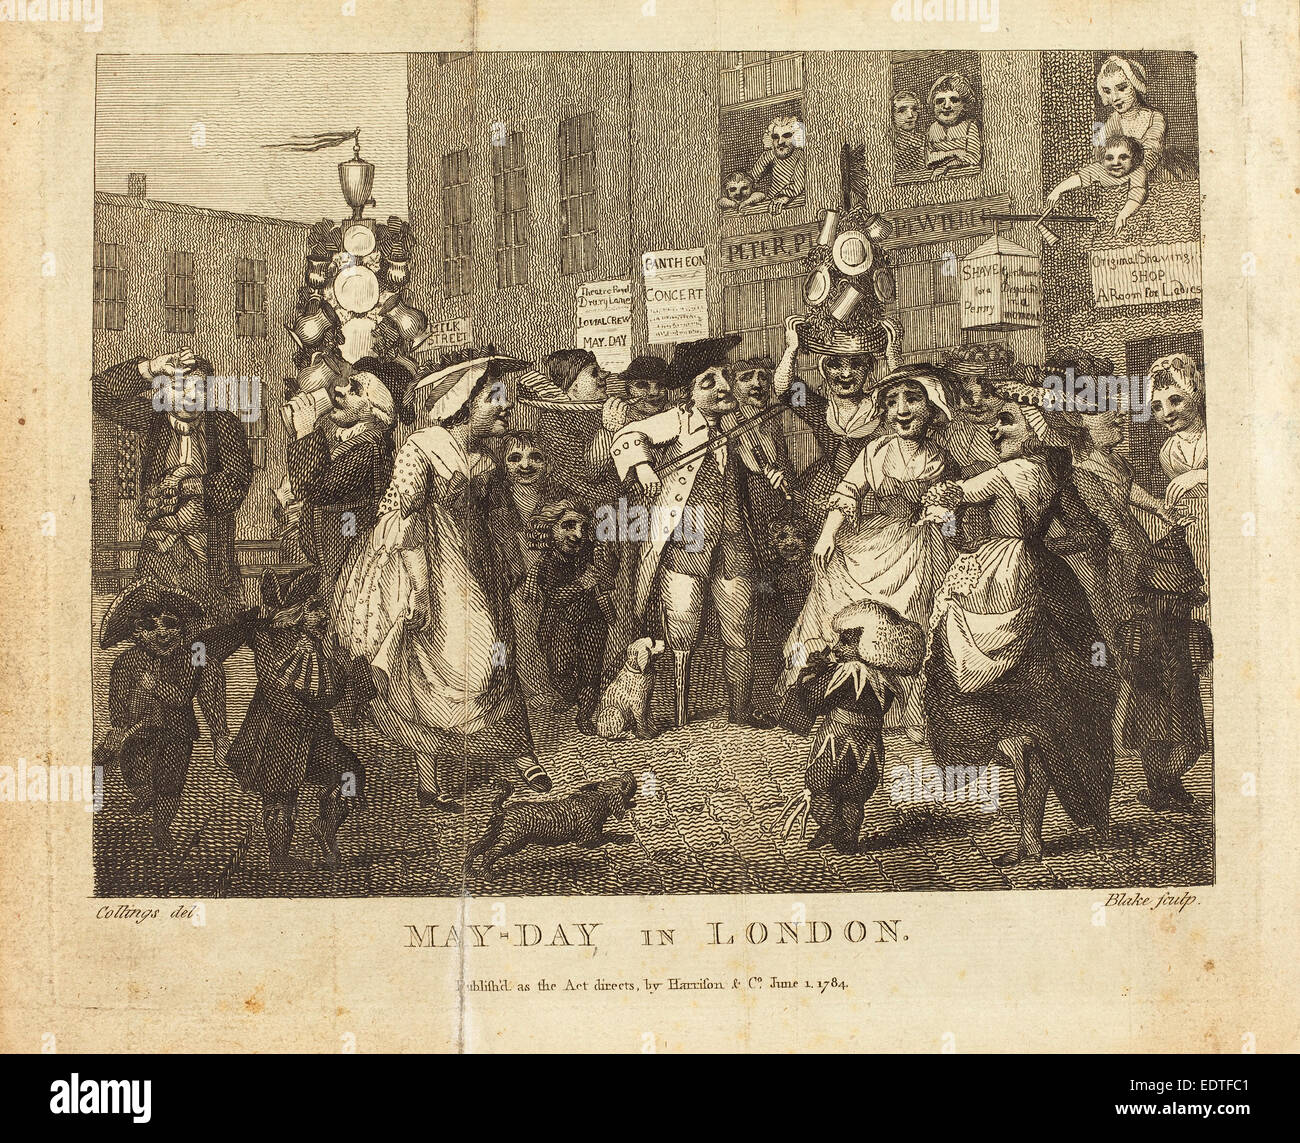 london by william blake Songs of innocence and of experience study guide contains a biography of william blake, literature essays, a complete e-text, quiz questions, major themes, characters, and a full summary and analysis.